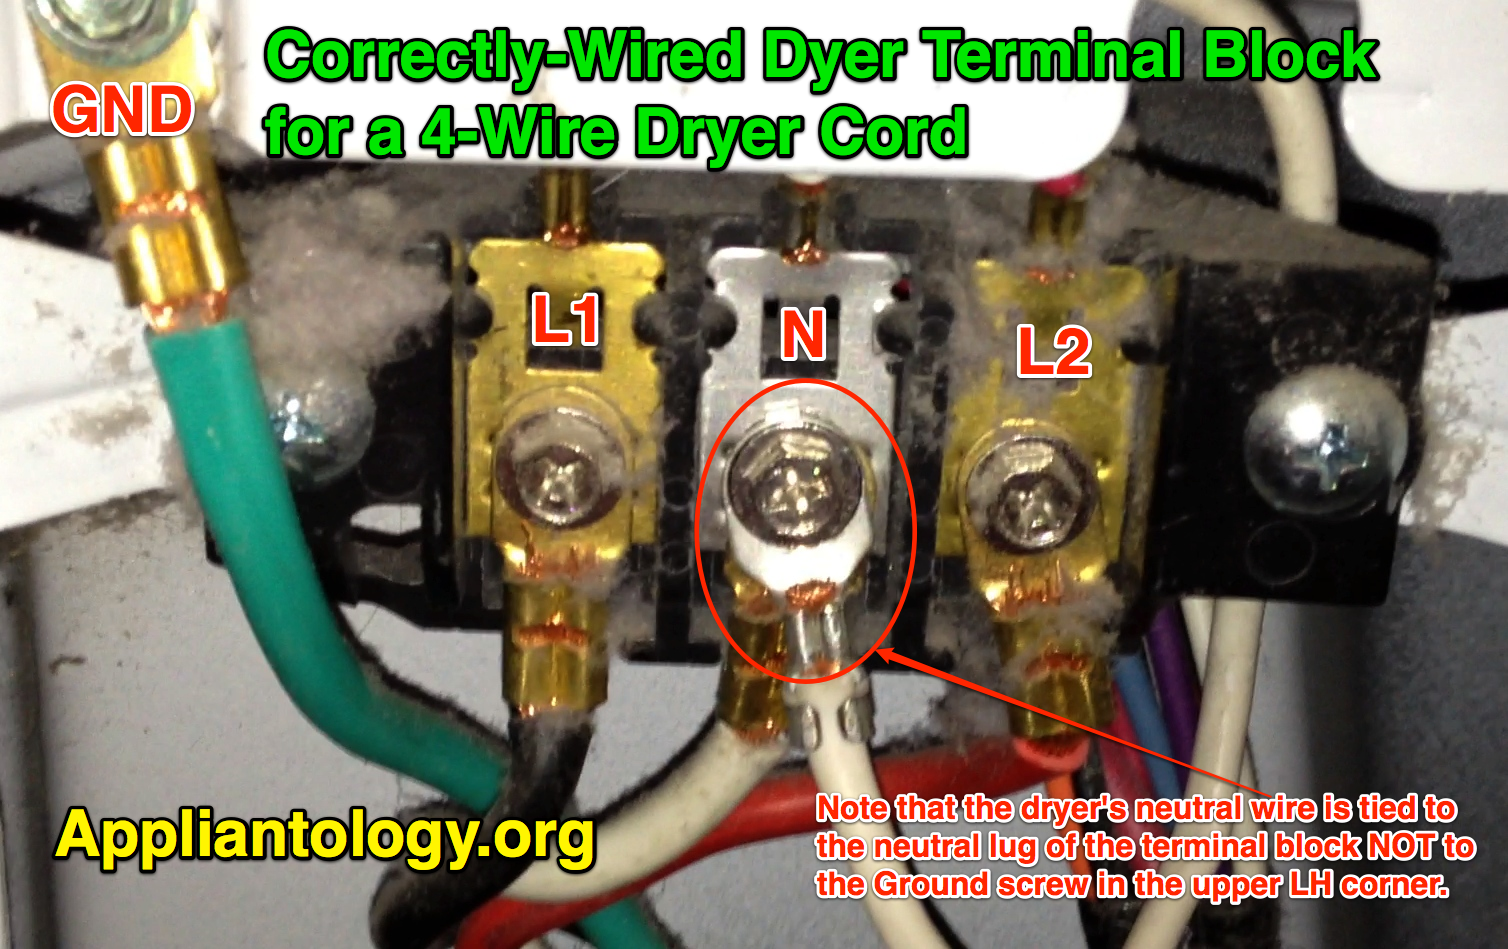 correctly wired dyer terminal block for a 4 wire dryer ... a telephone jack wiring 4 wires with a dryer schematic wiring 4 wires